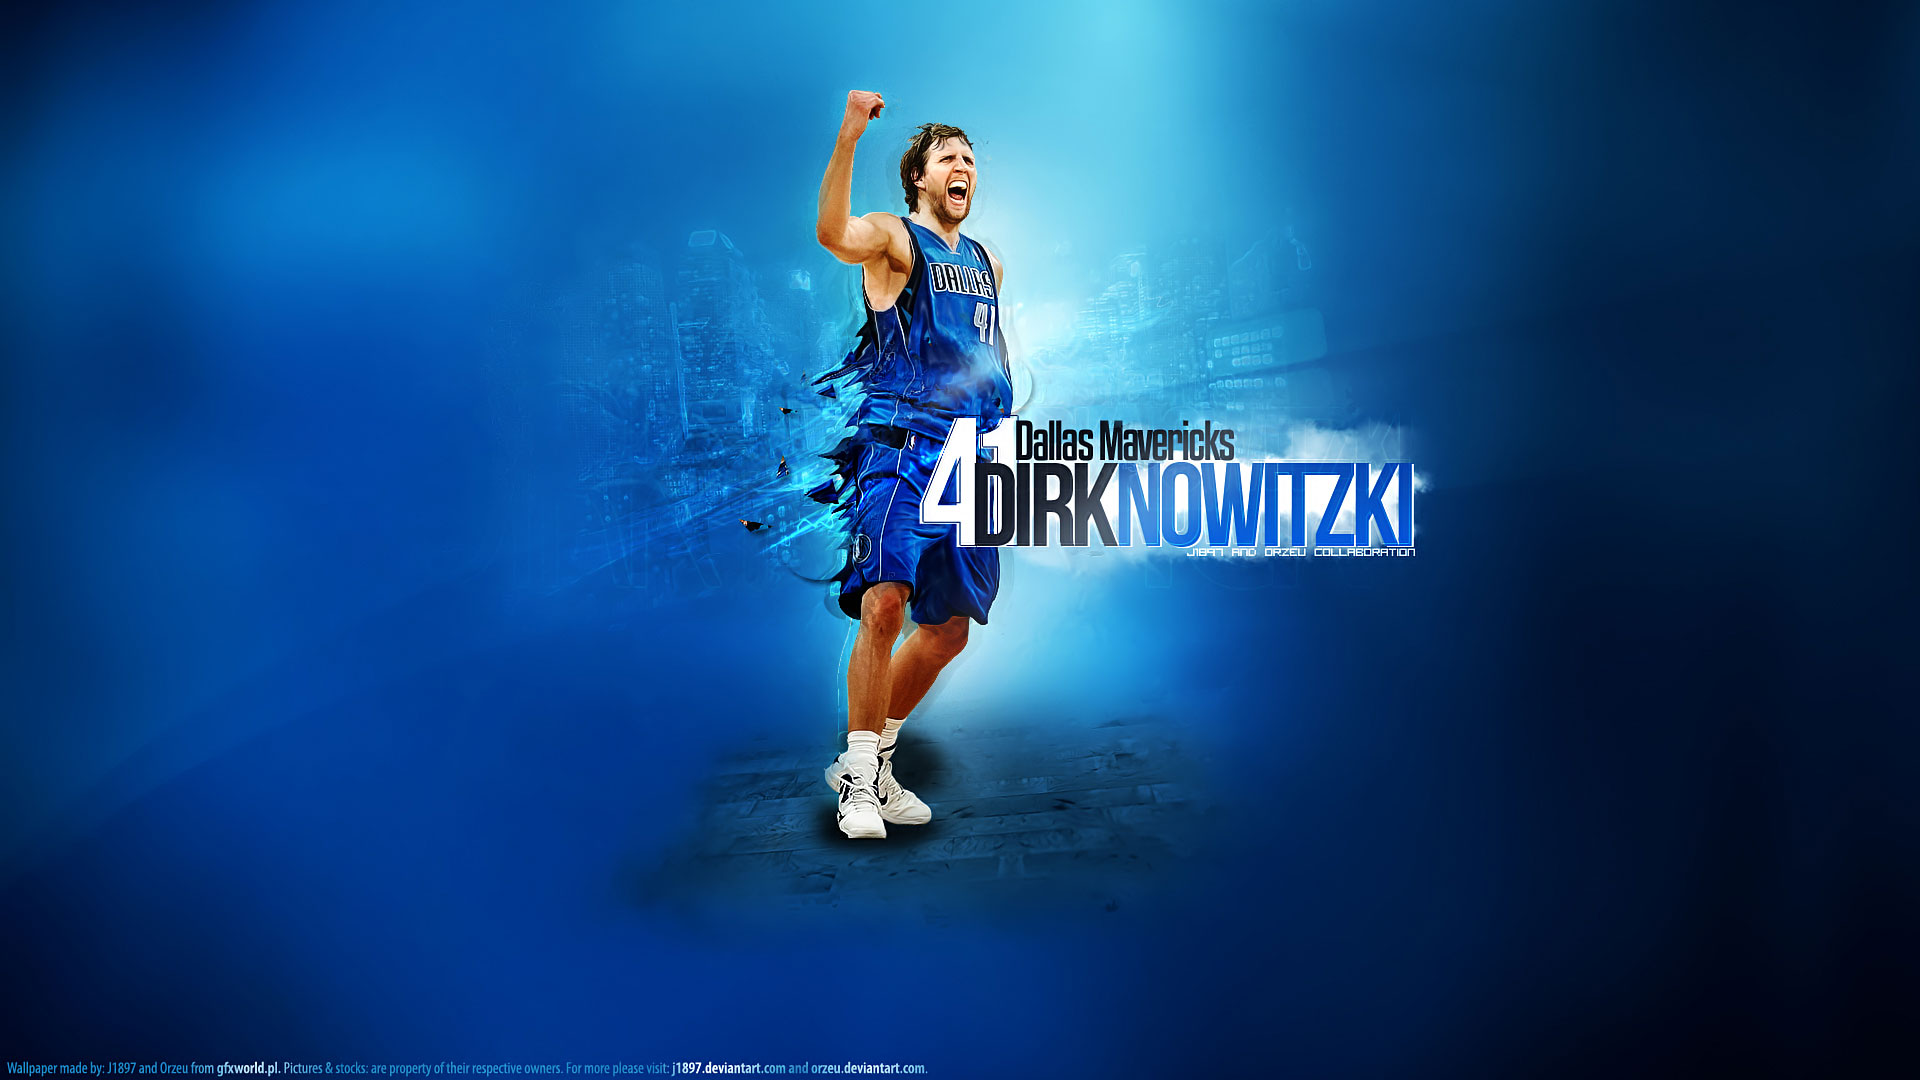 Nba Players Iphone Wallpaper Dirk Nowitzki Wallpapers Basketball Wallpapers At